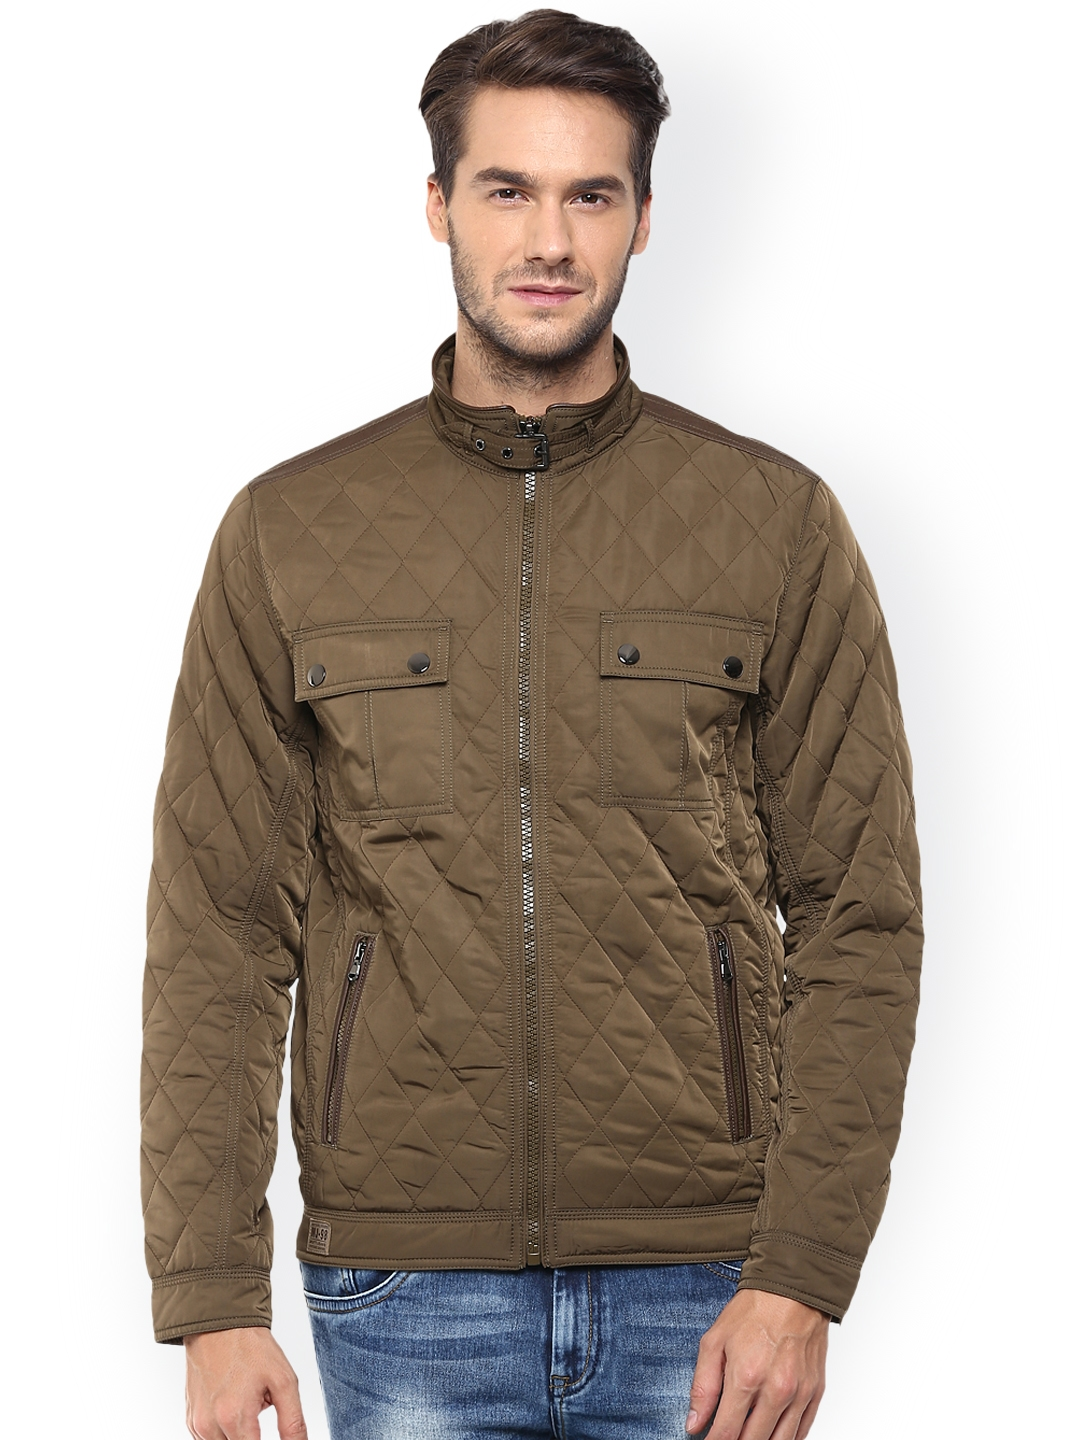 0ff7852ae0 Buy Mufti Olive Brown Quilted Jacket - Jackets for Men